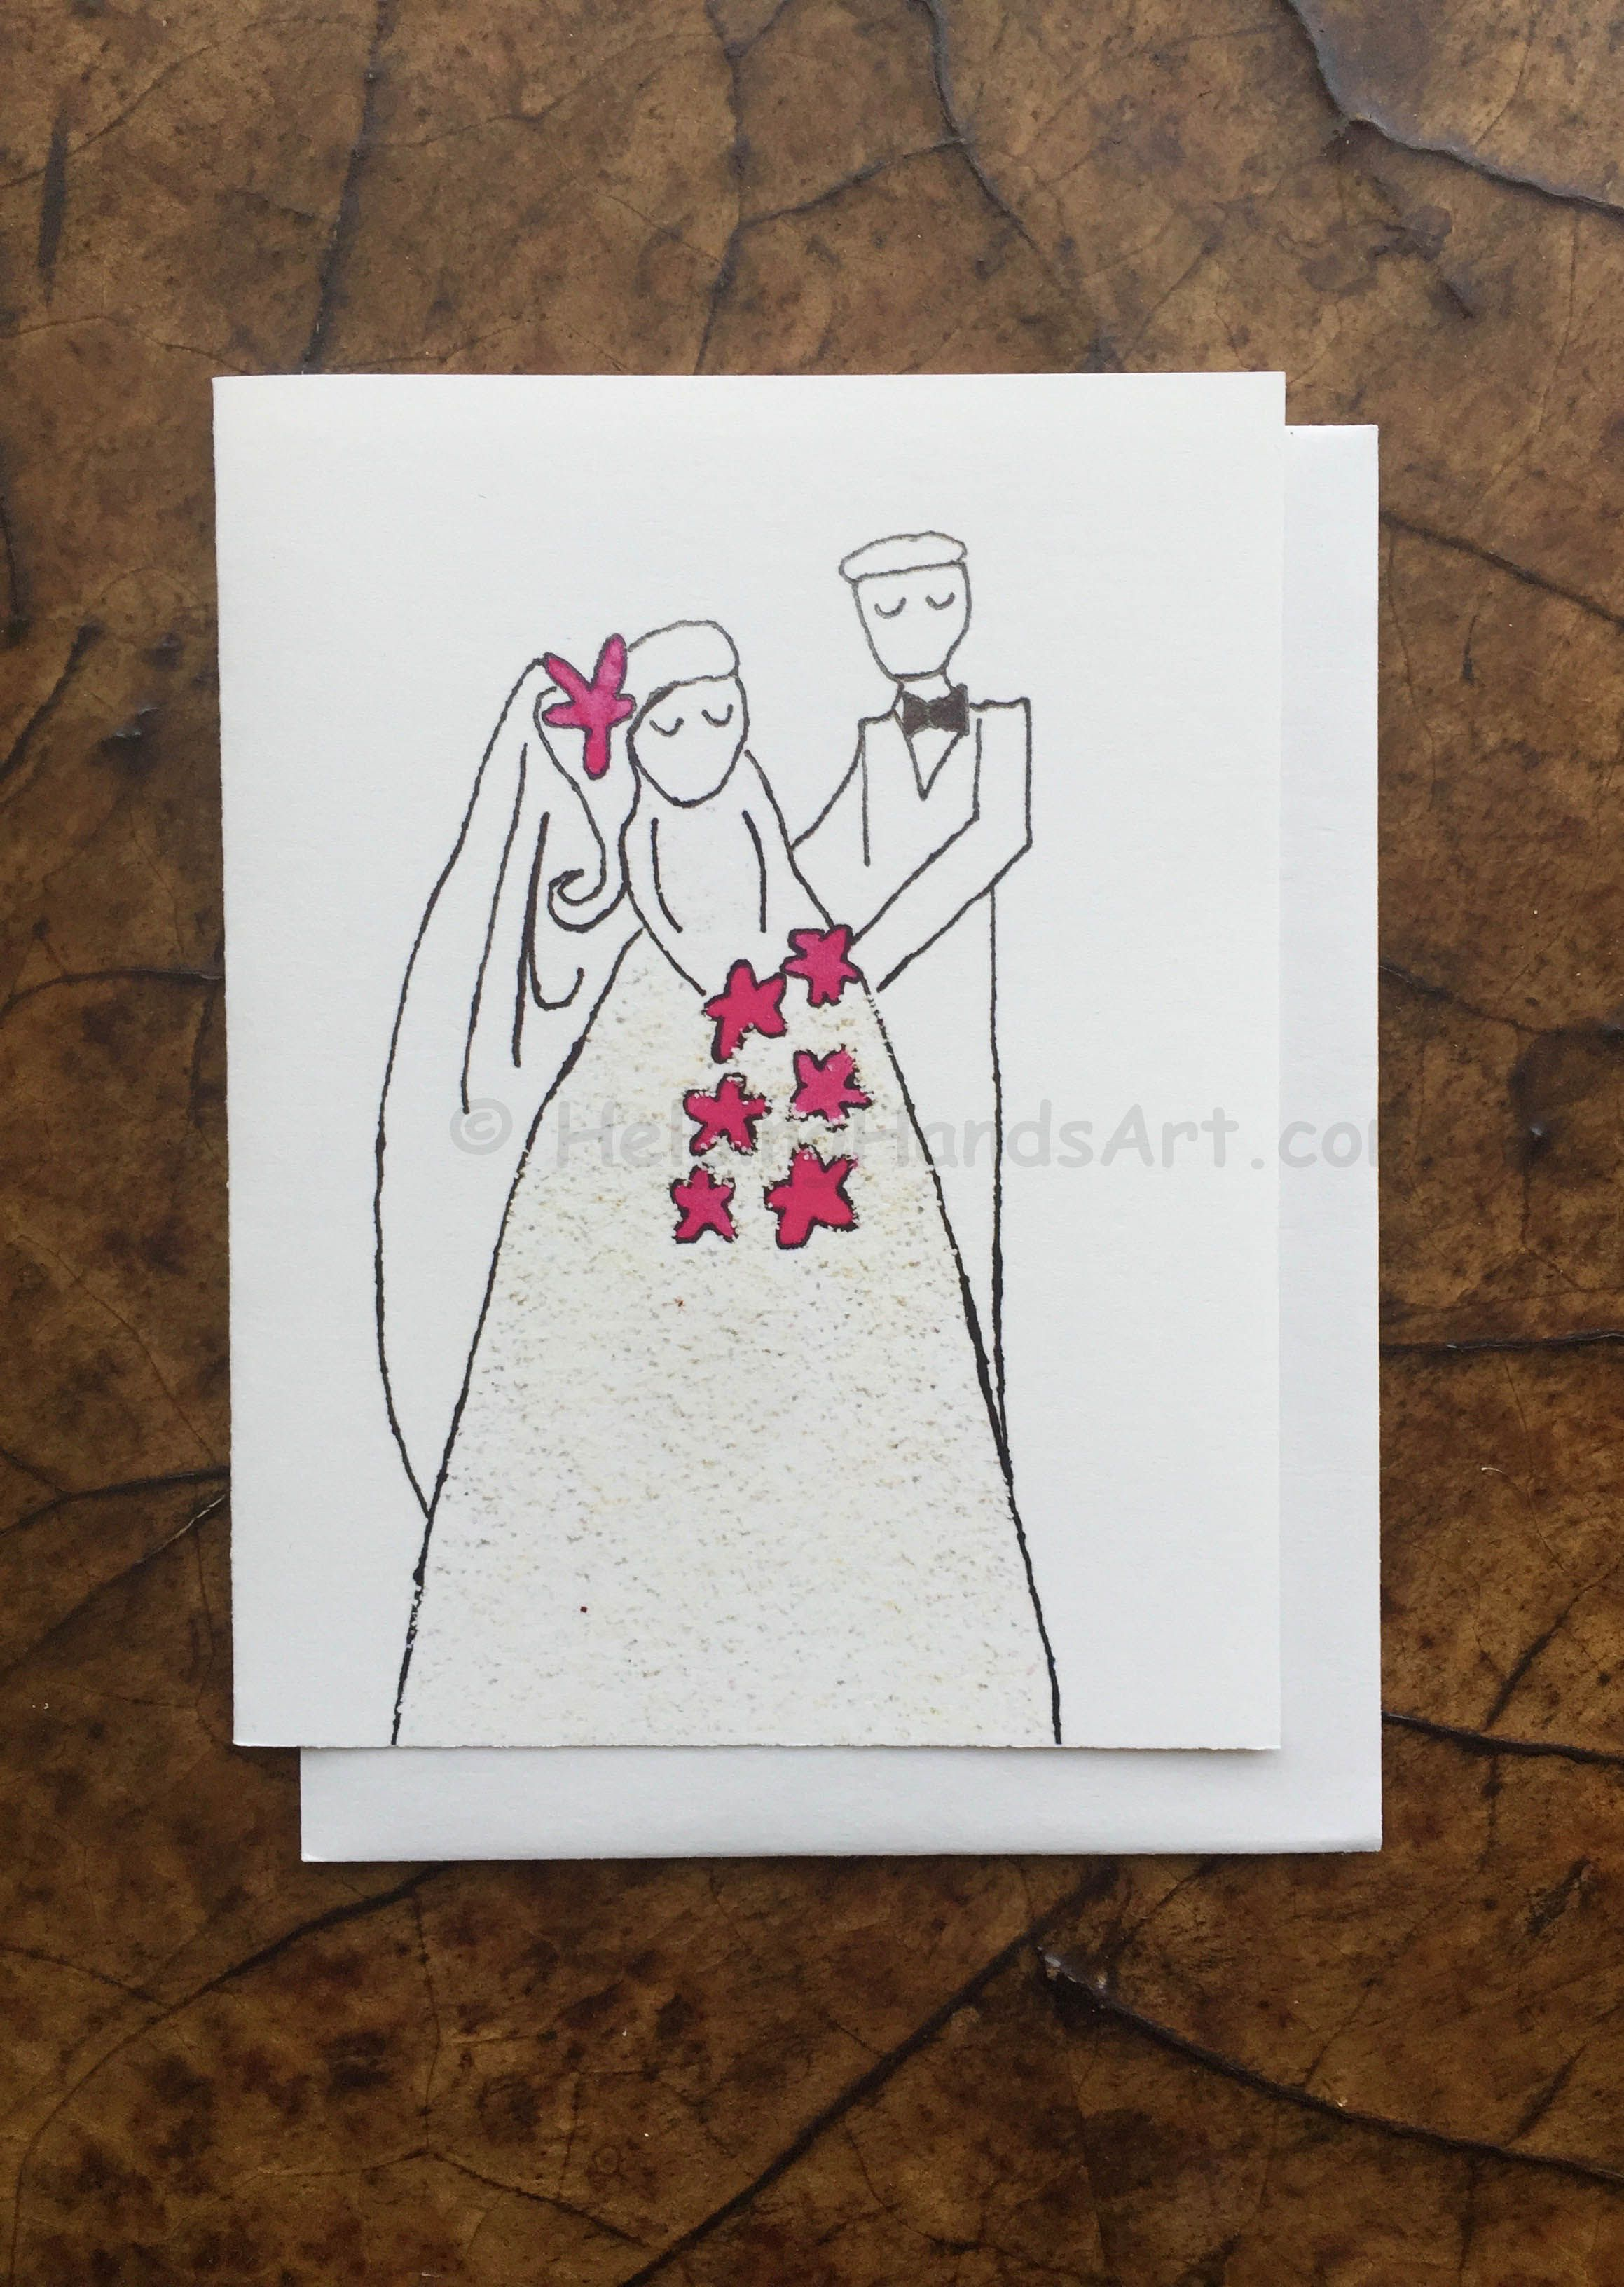 Bride And Groom Wedding Card Created By Adult Artist With Autism